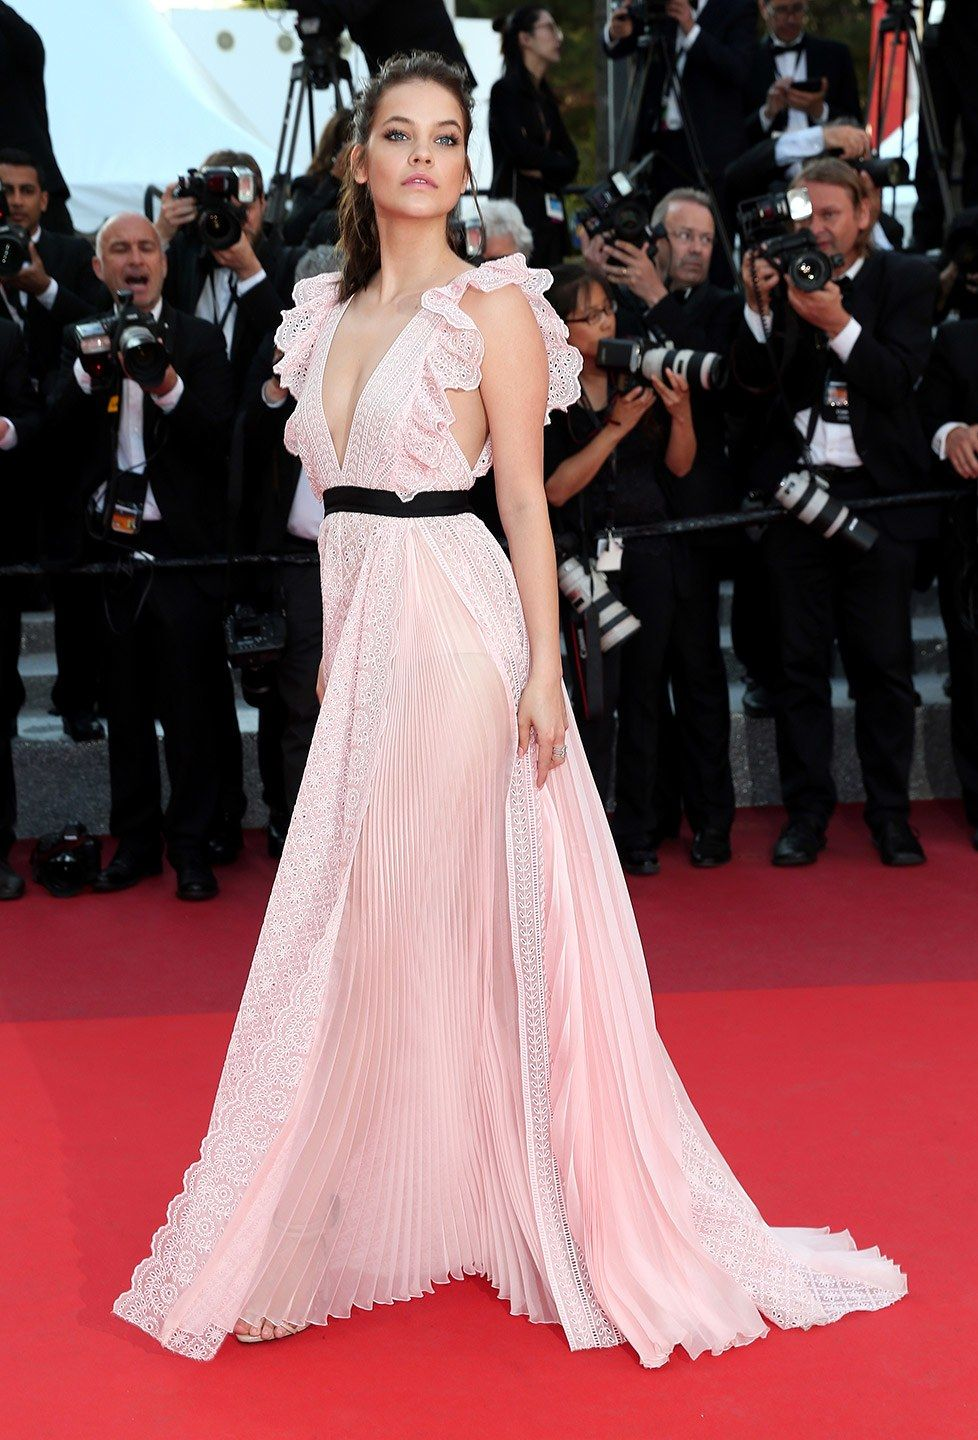 The 2016 Cannes Red Carpet\'s Best-Dressed Celebrities | Trajes ...